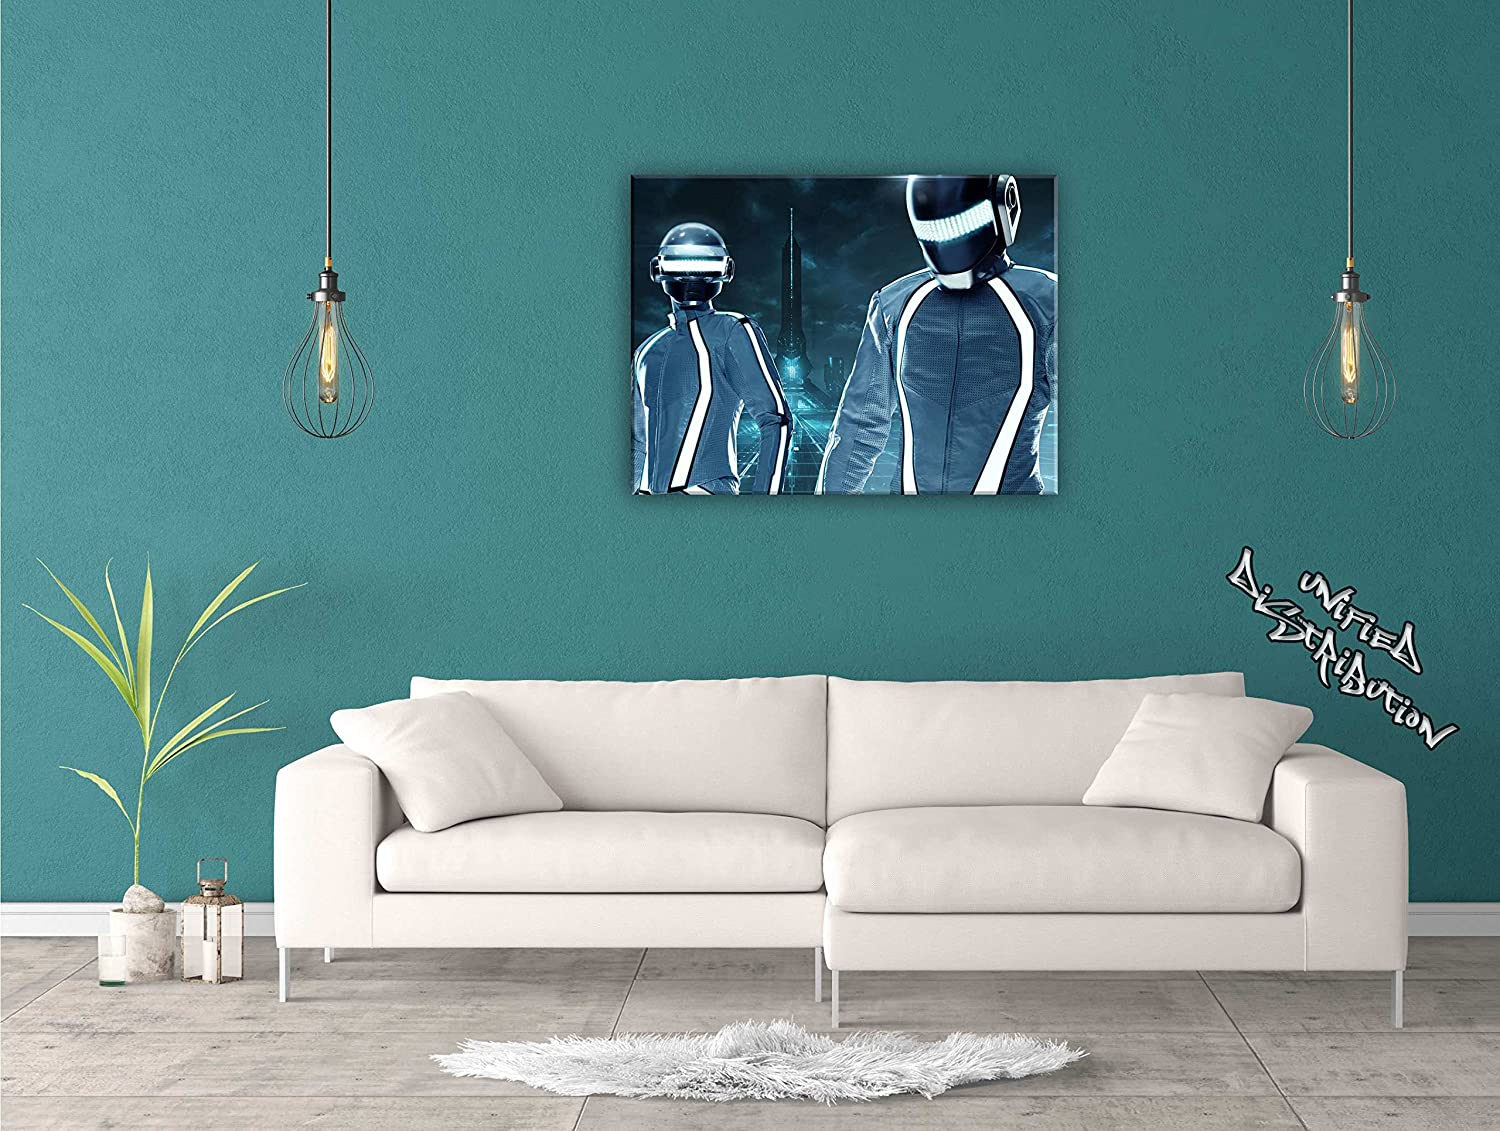 Unified Distribution Daft Daft Daft Punk Tron City - 120x80 cm - Bilder & Kunstdrucke fertig auf Leinwand aufgespannt und in erstklassiger Druckqualität 1233ef